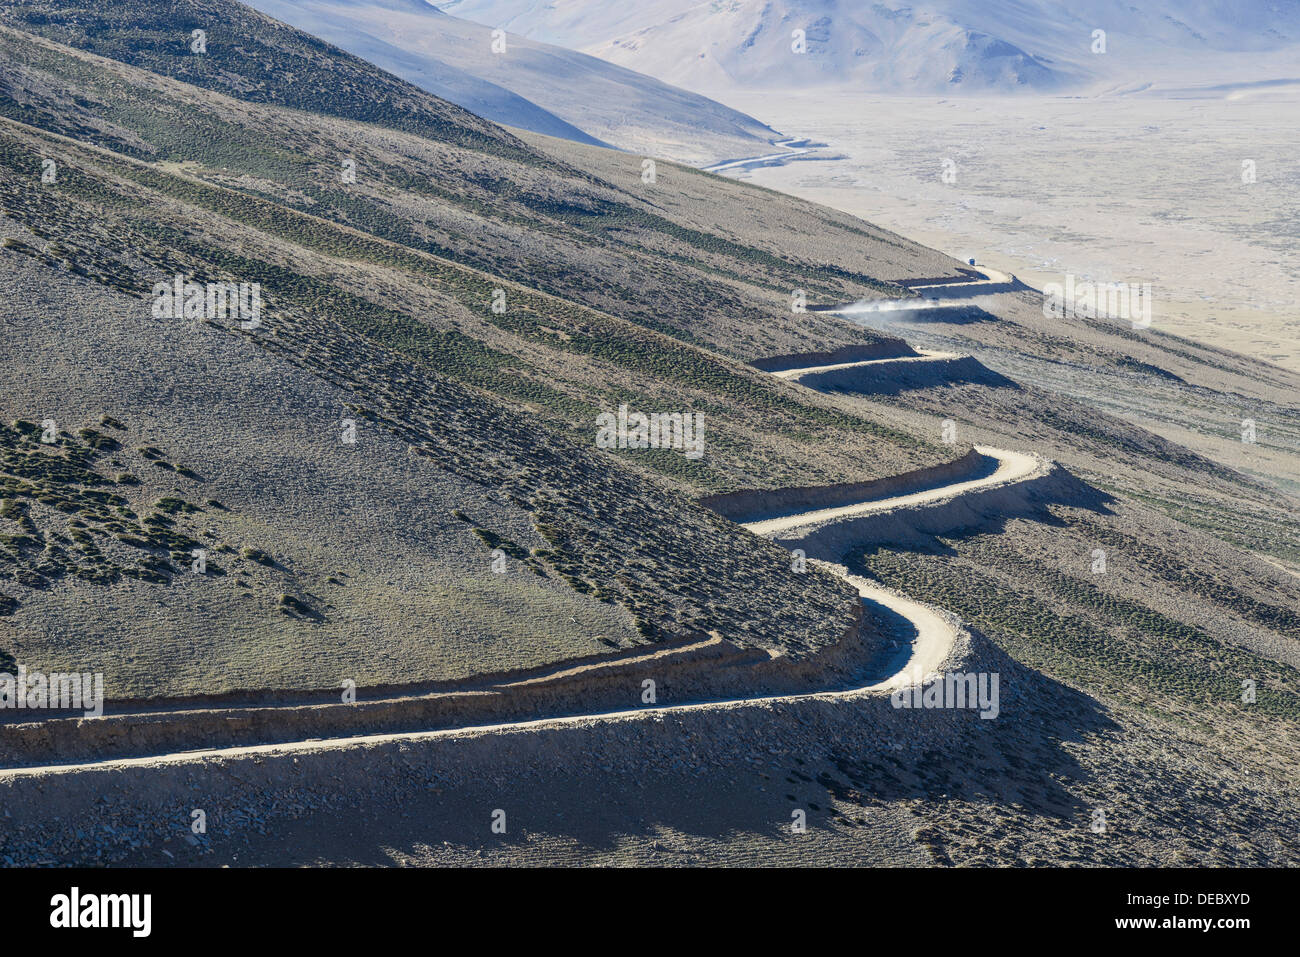 A winding road leading up to Taglang La, 5.325 m, the highest pass on the Manali-Leh Highway, Rumtse, Ladakh, Jammu and Kashmir - Stock Image